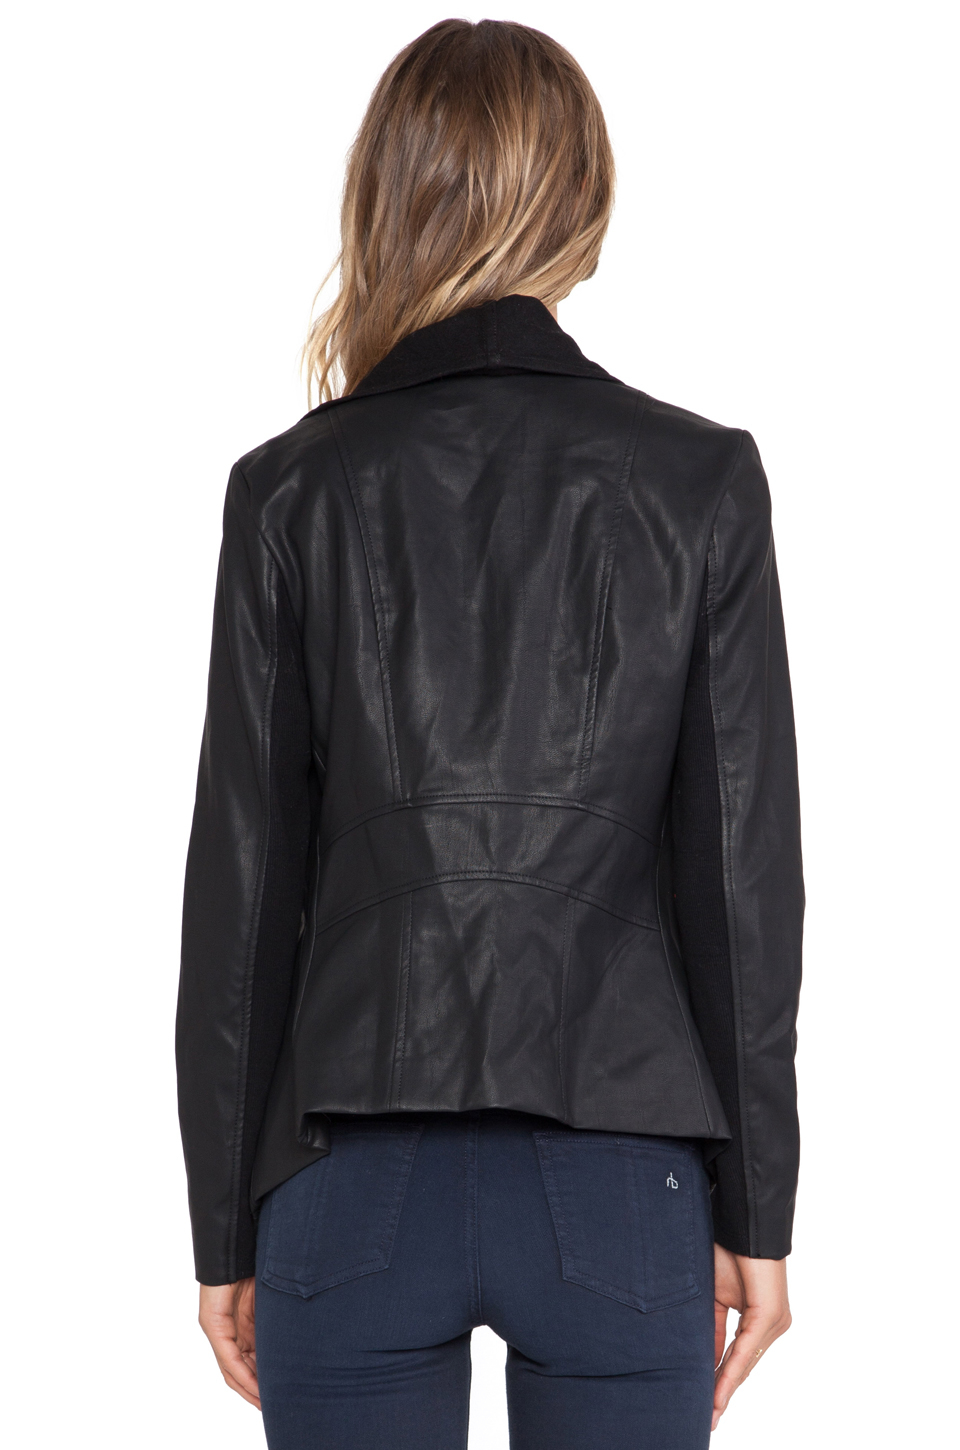 Bardot leather jacket